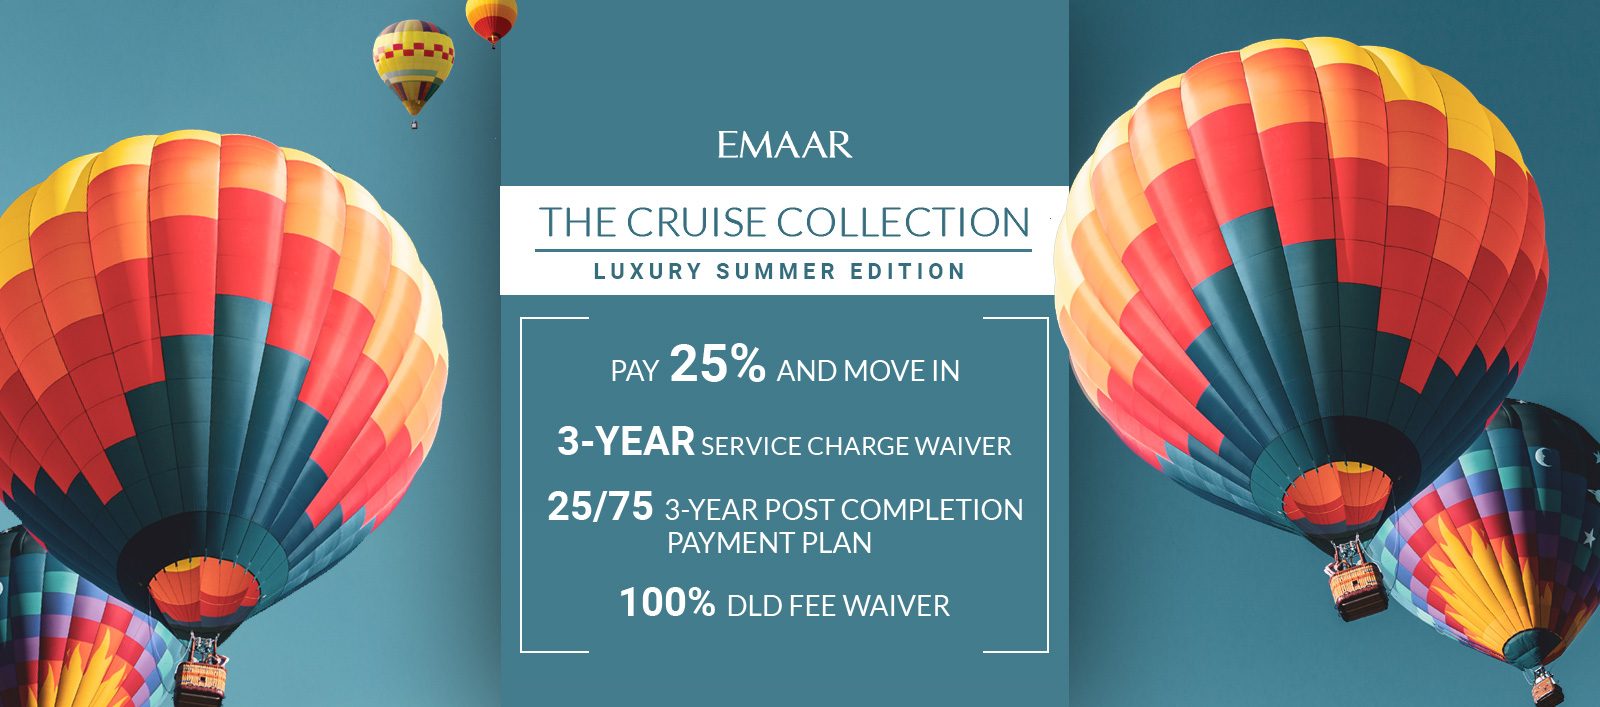 emaar-cruise-slider-_3